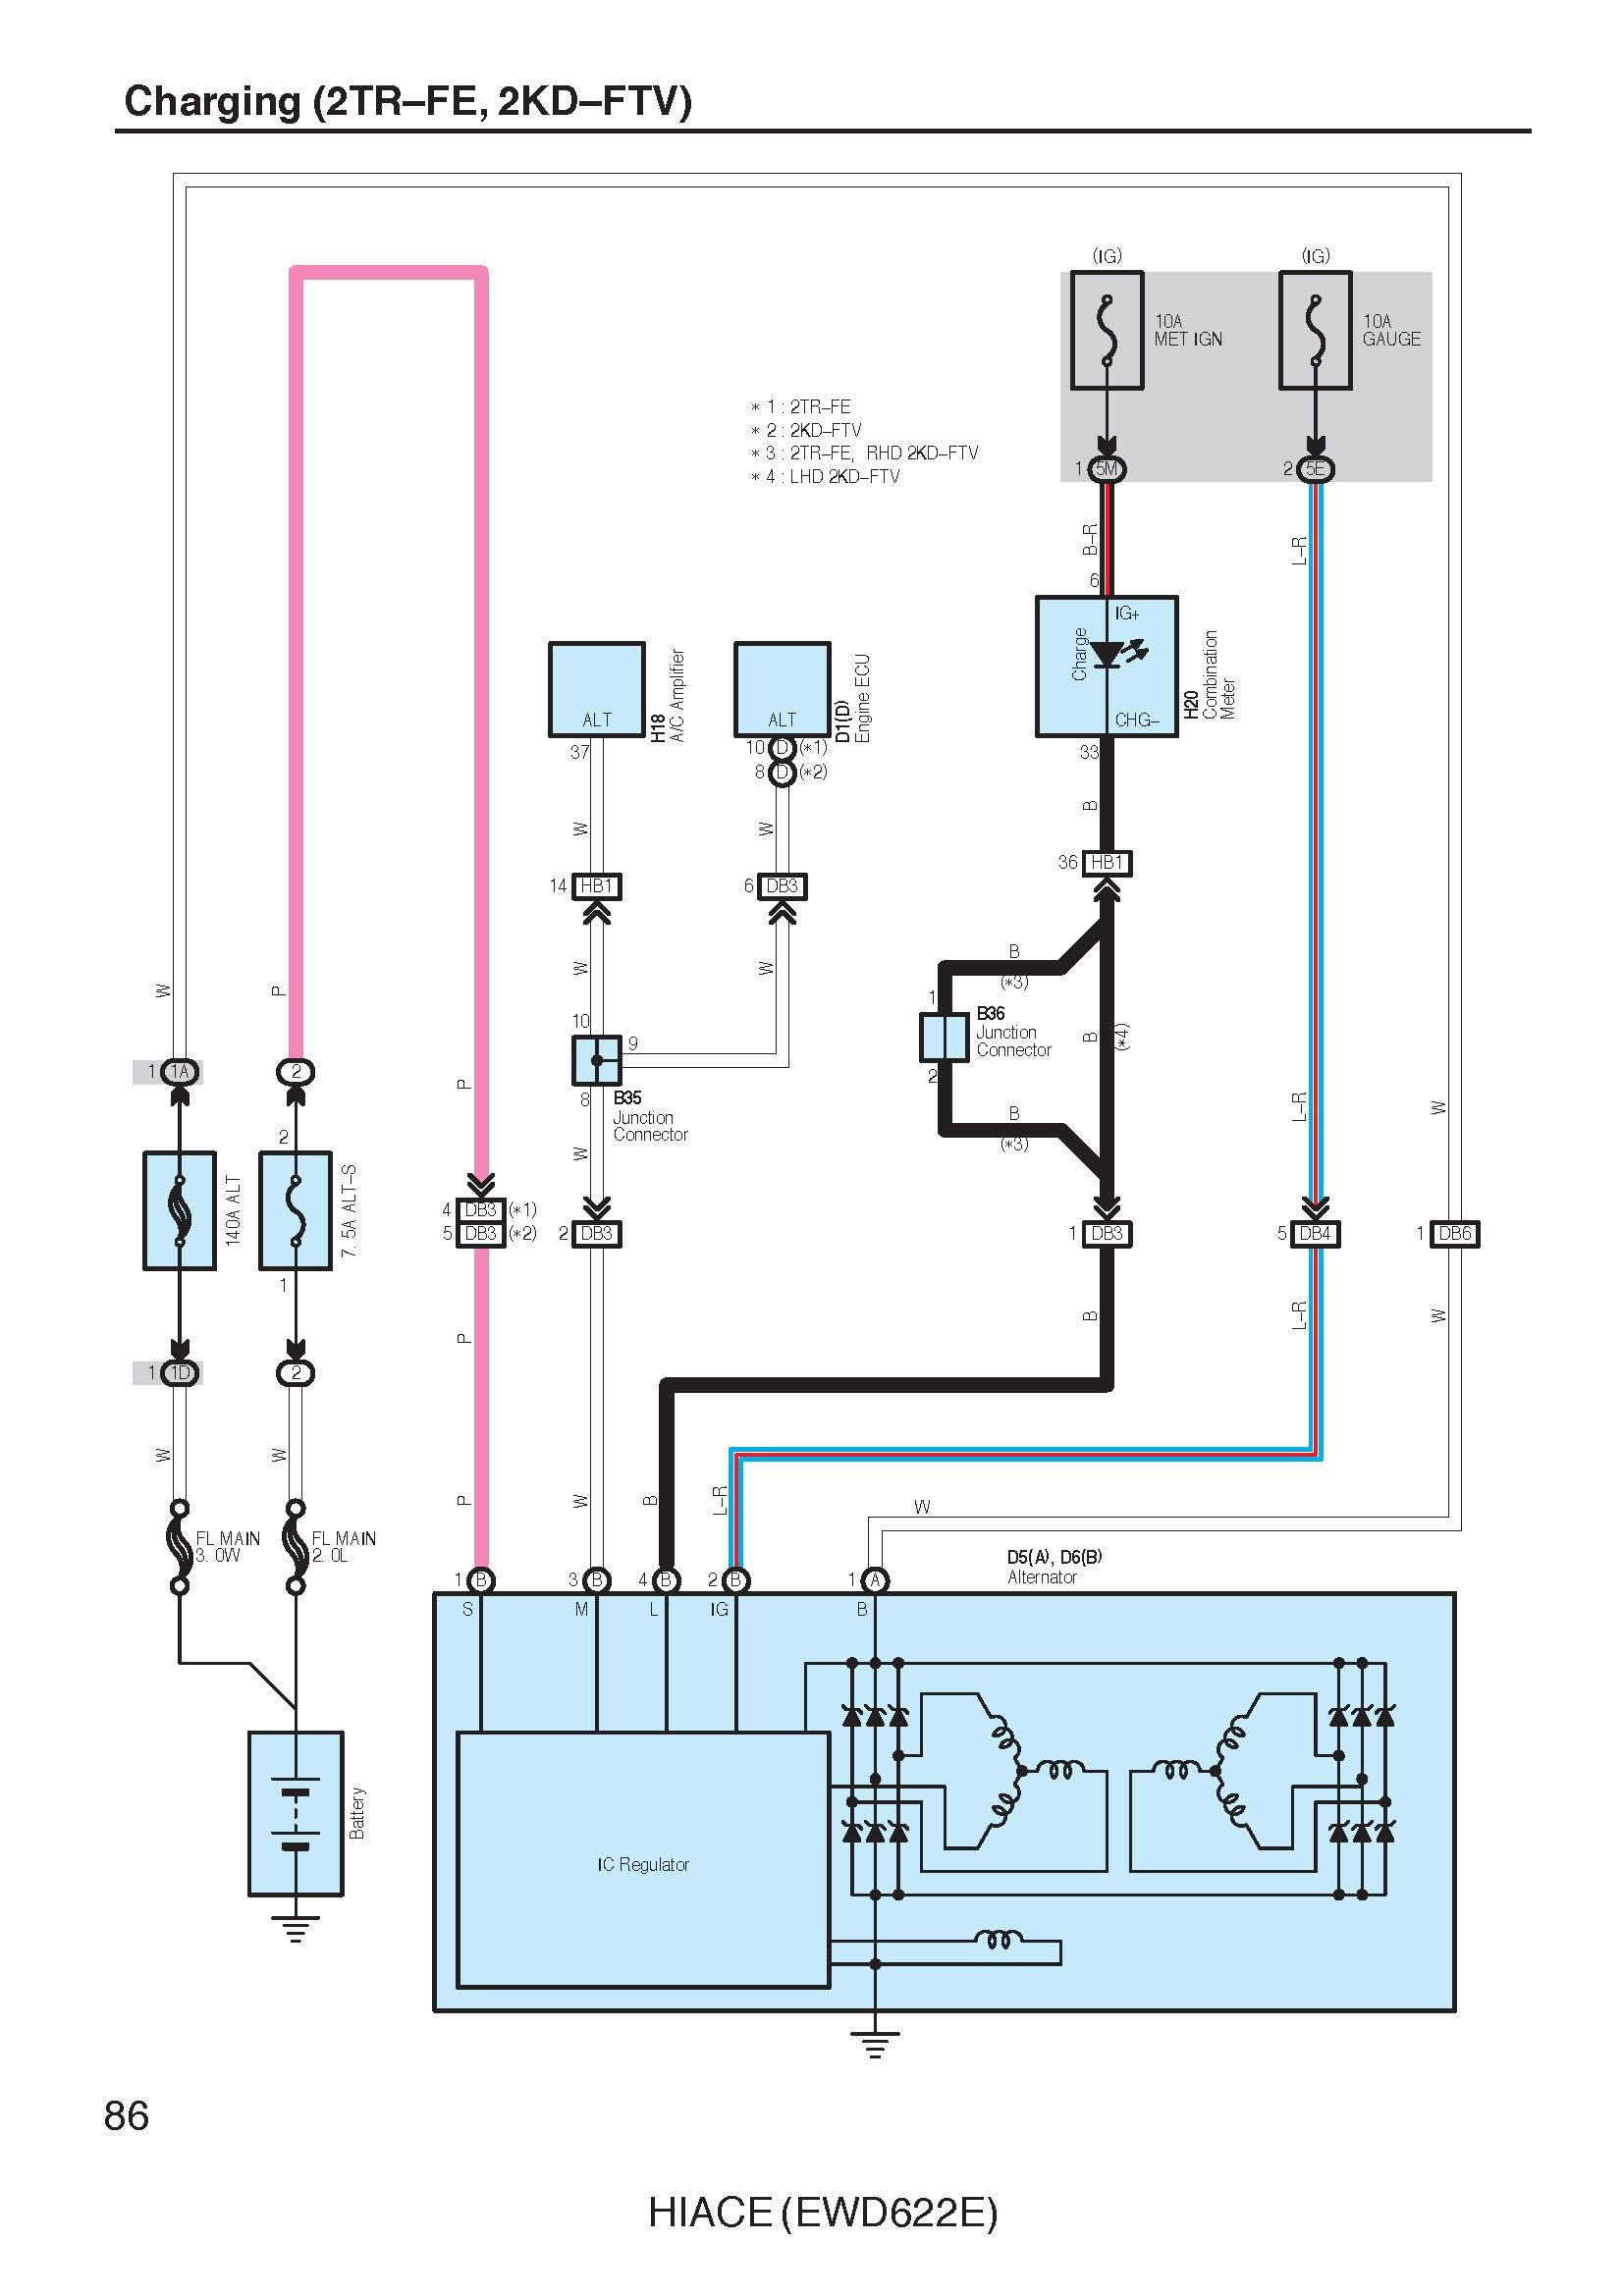 Wiring Tutorial Pdf Everything About Diagram Plc Basics 2006 Toyota Hiace Full Original And Coloured Electrical Rh Pinterest Com For The